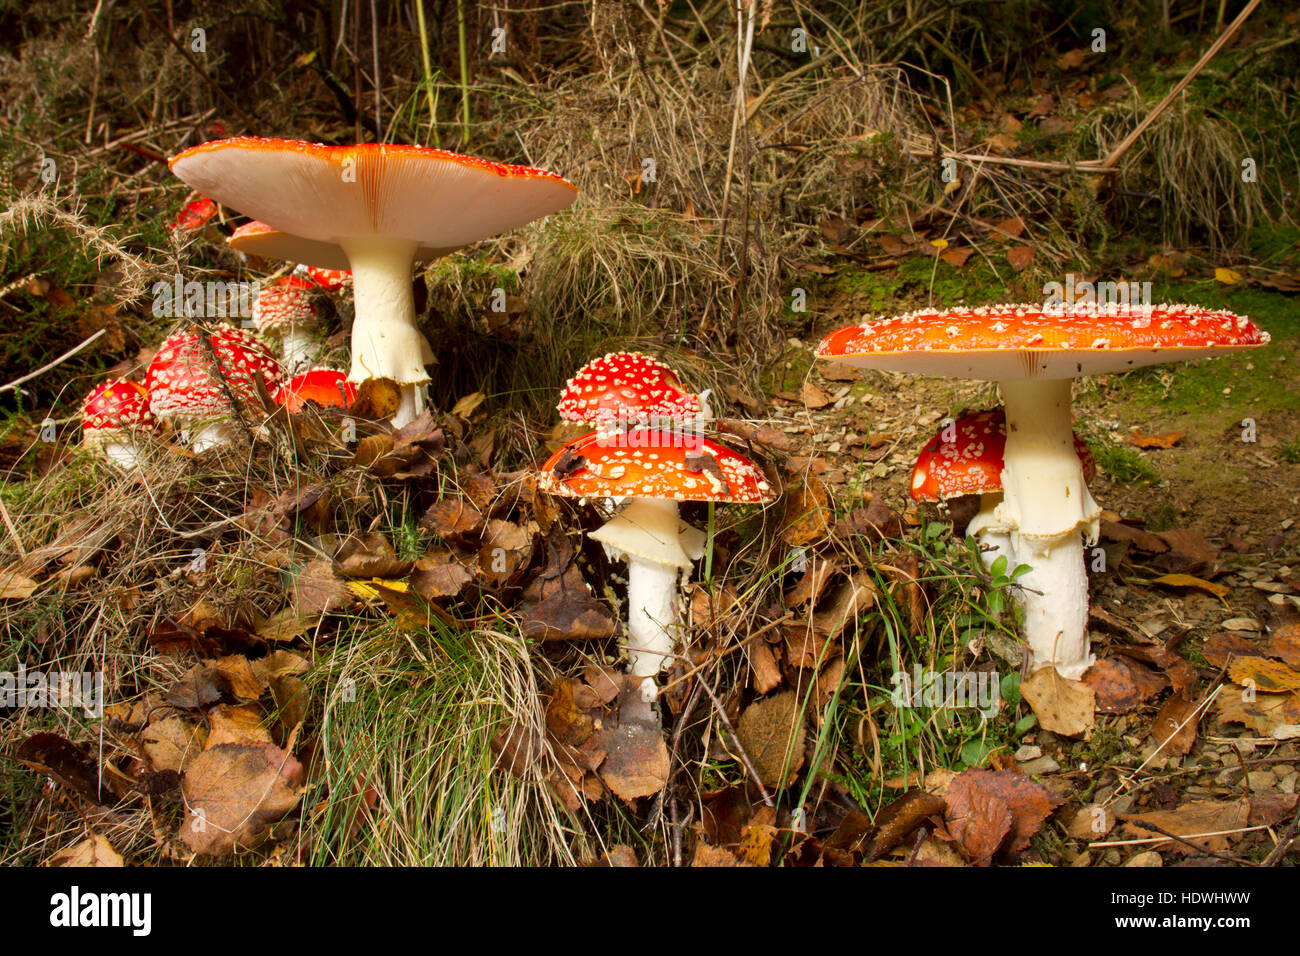 Fly Agaric fungus (Amanita muscaria) fruiting bodies in woodland. Powys, Wales. October. - Stock Image